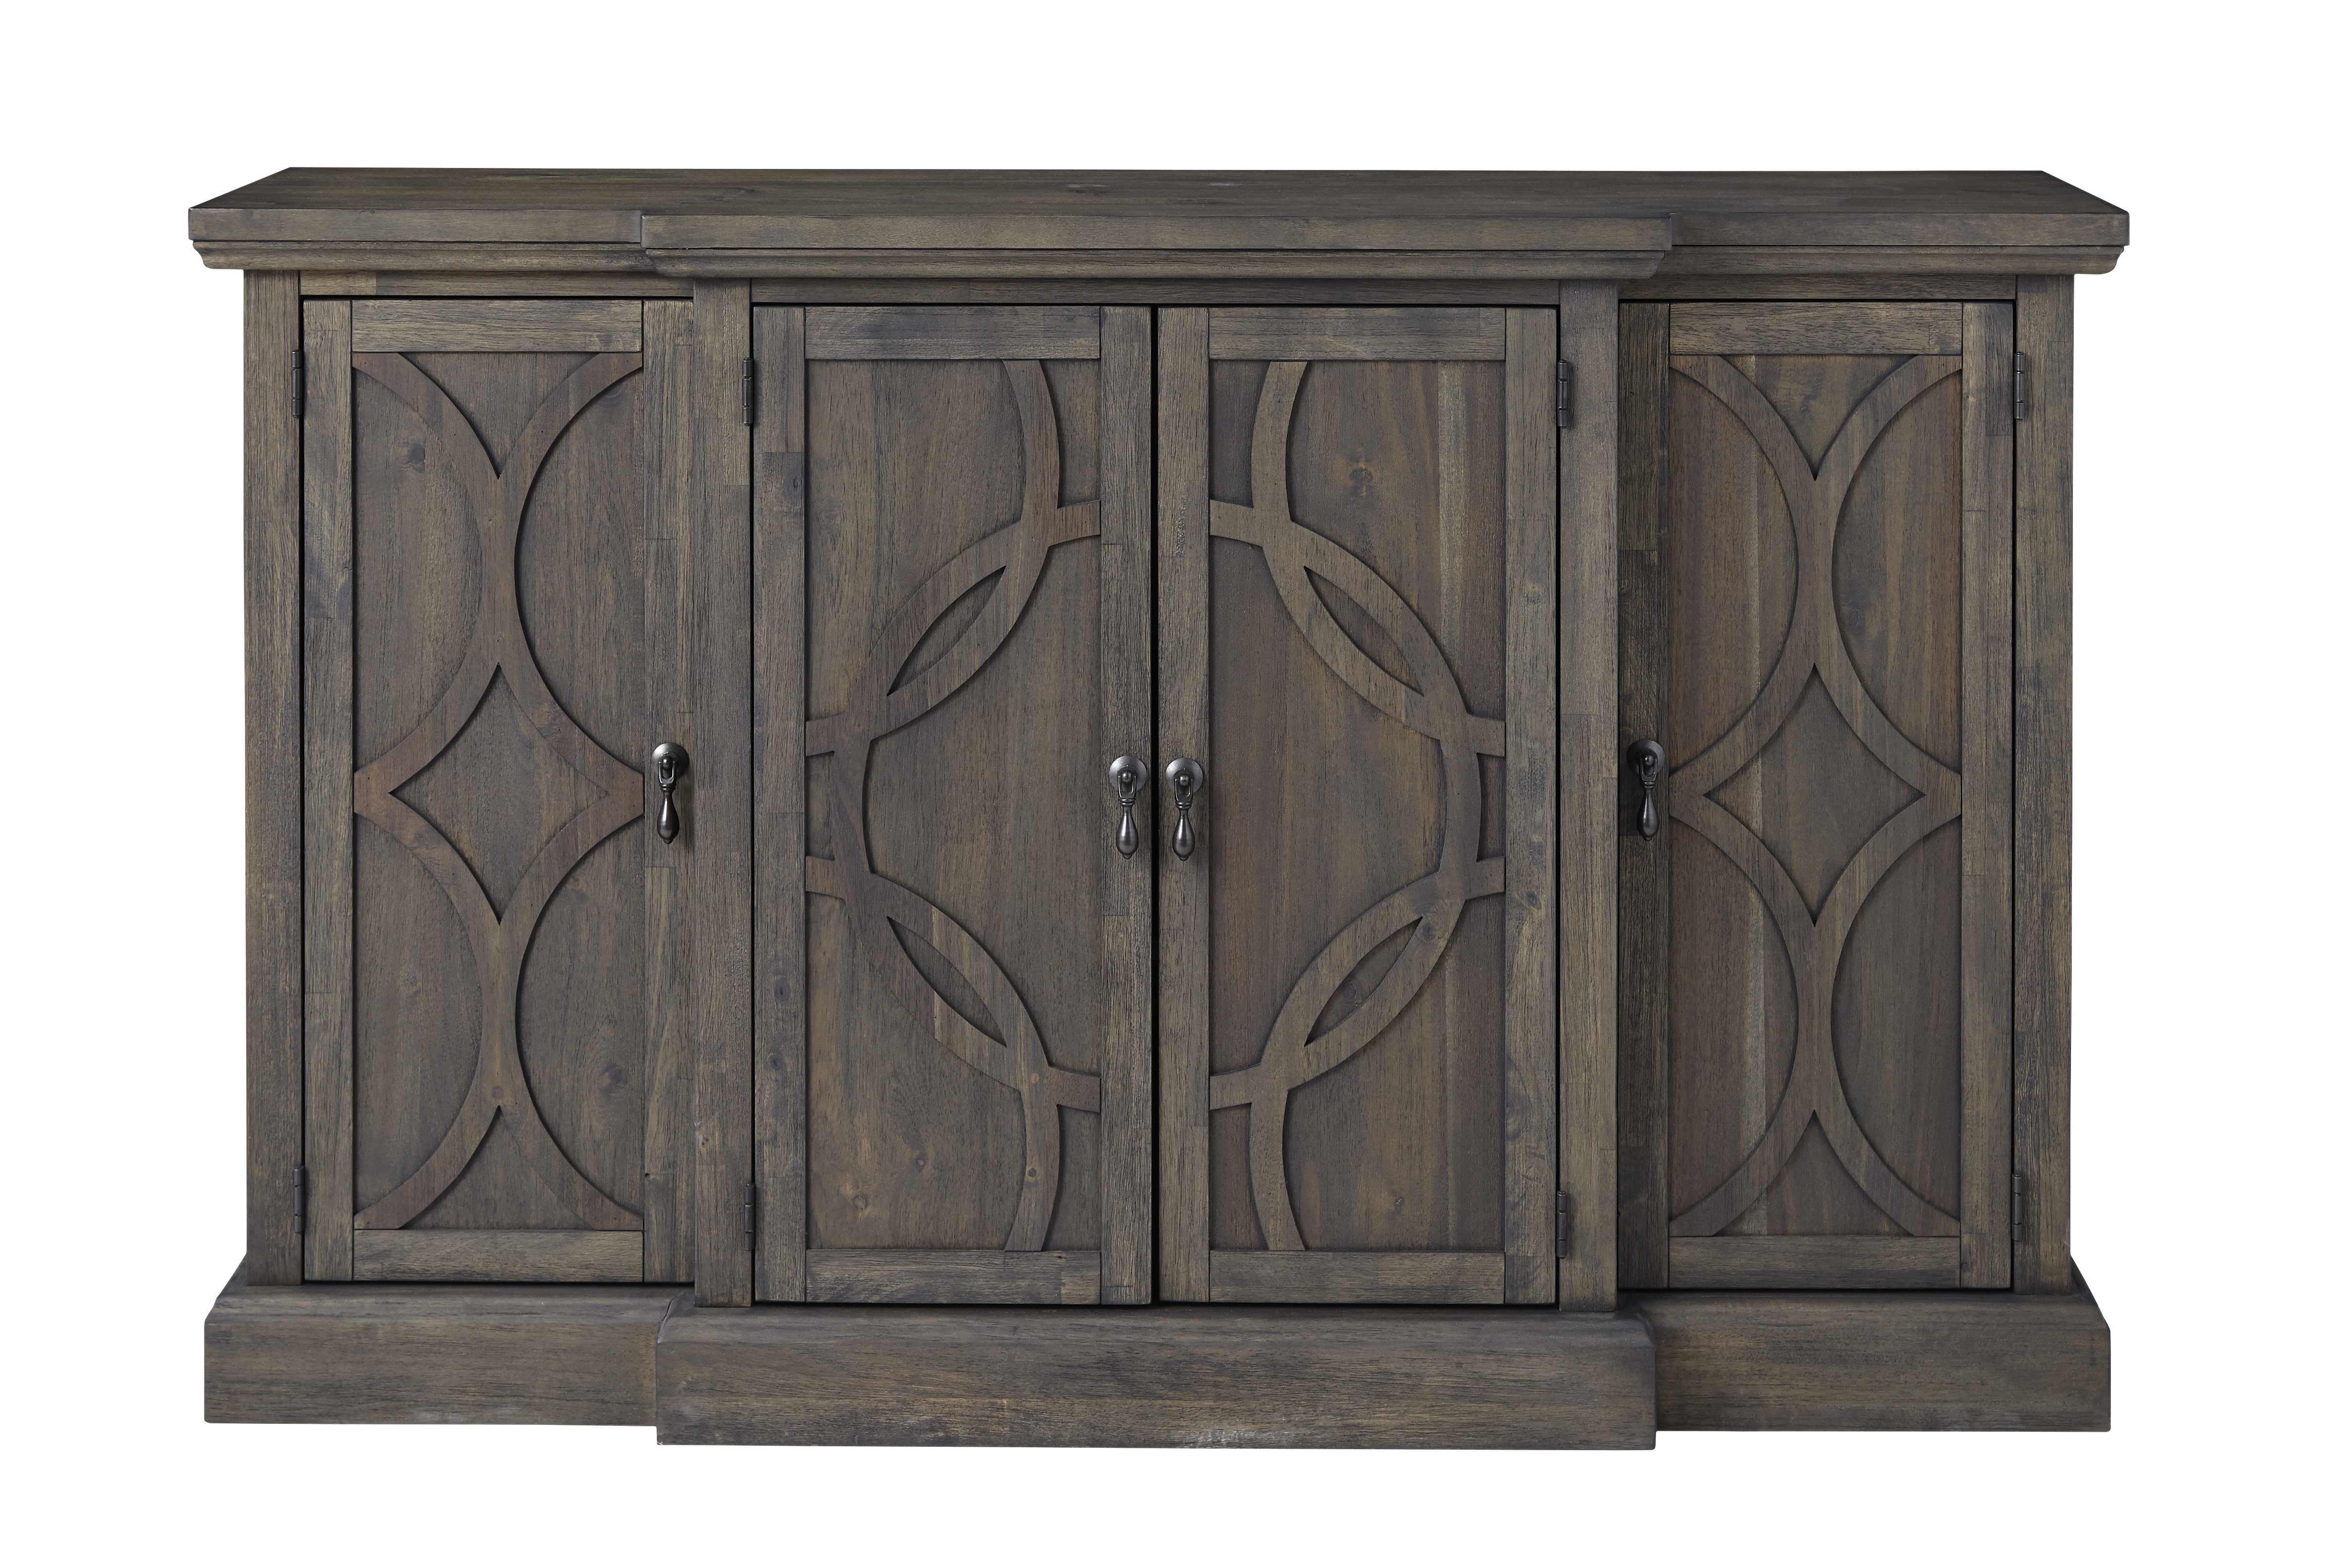 Dining Buffet Server | Wayfair Inside Contemporary Style Wooden Buffets With Two Side Door Storage Cabinets (View 7 of 20)